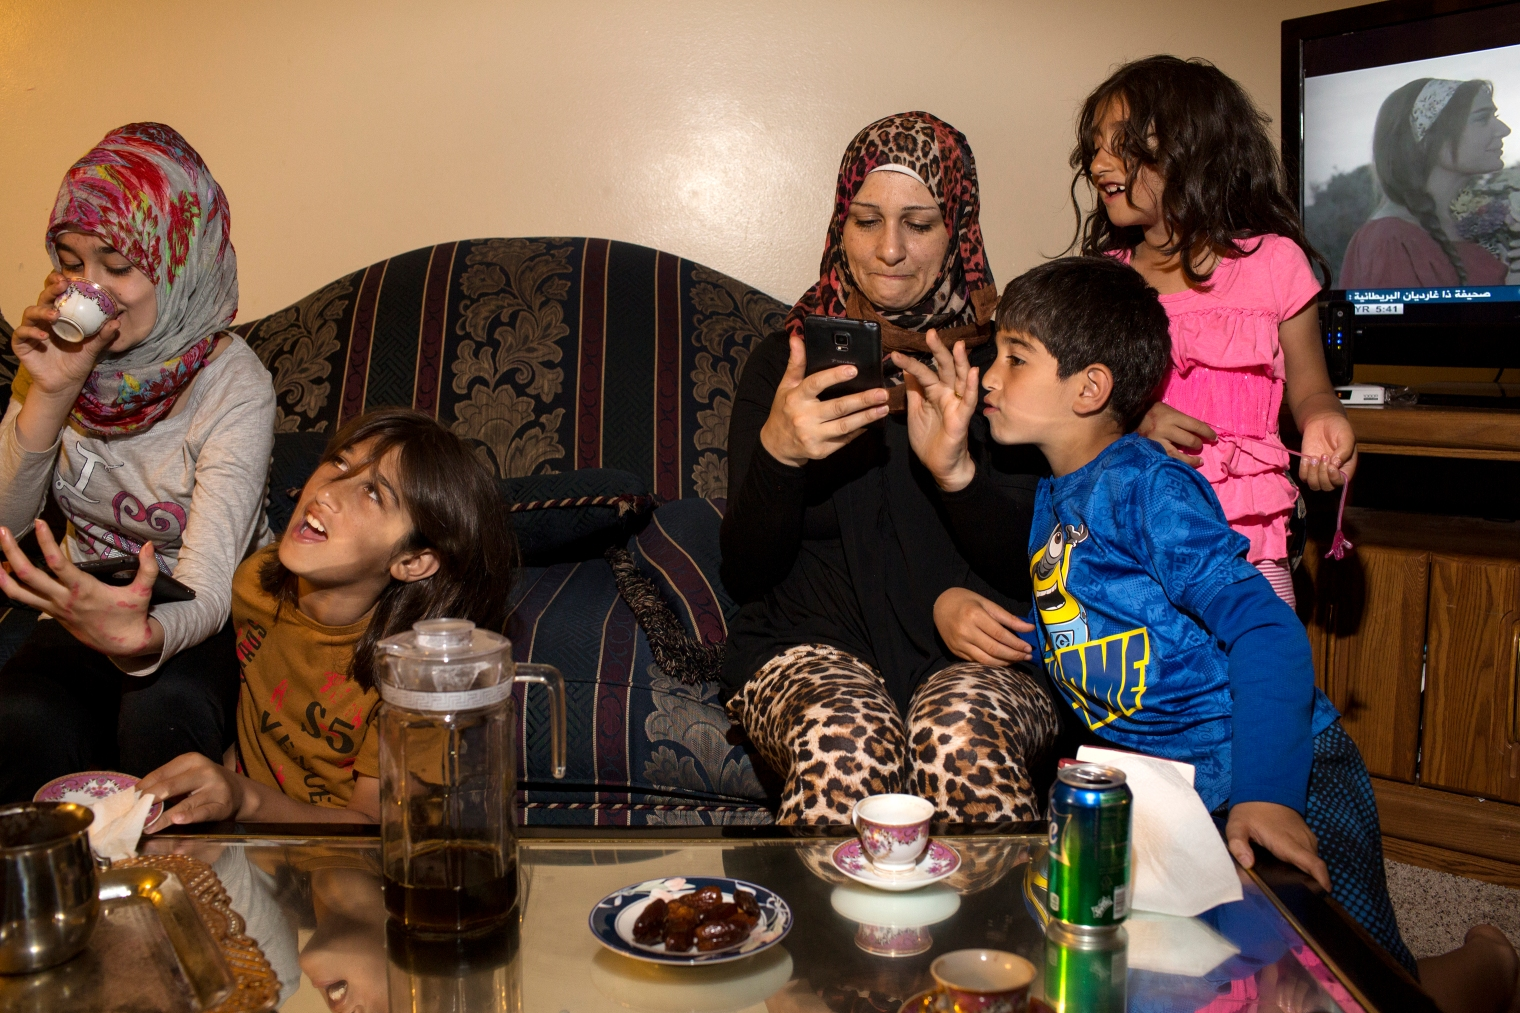 Ghazweh Aljabooli and her children, Sedra, Haidar, Mutaz and Hala (left to right) after breaking their fast during Ramadan at their apartment in West Des Moines, Iowa.